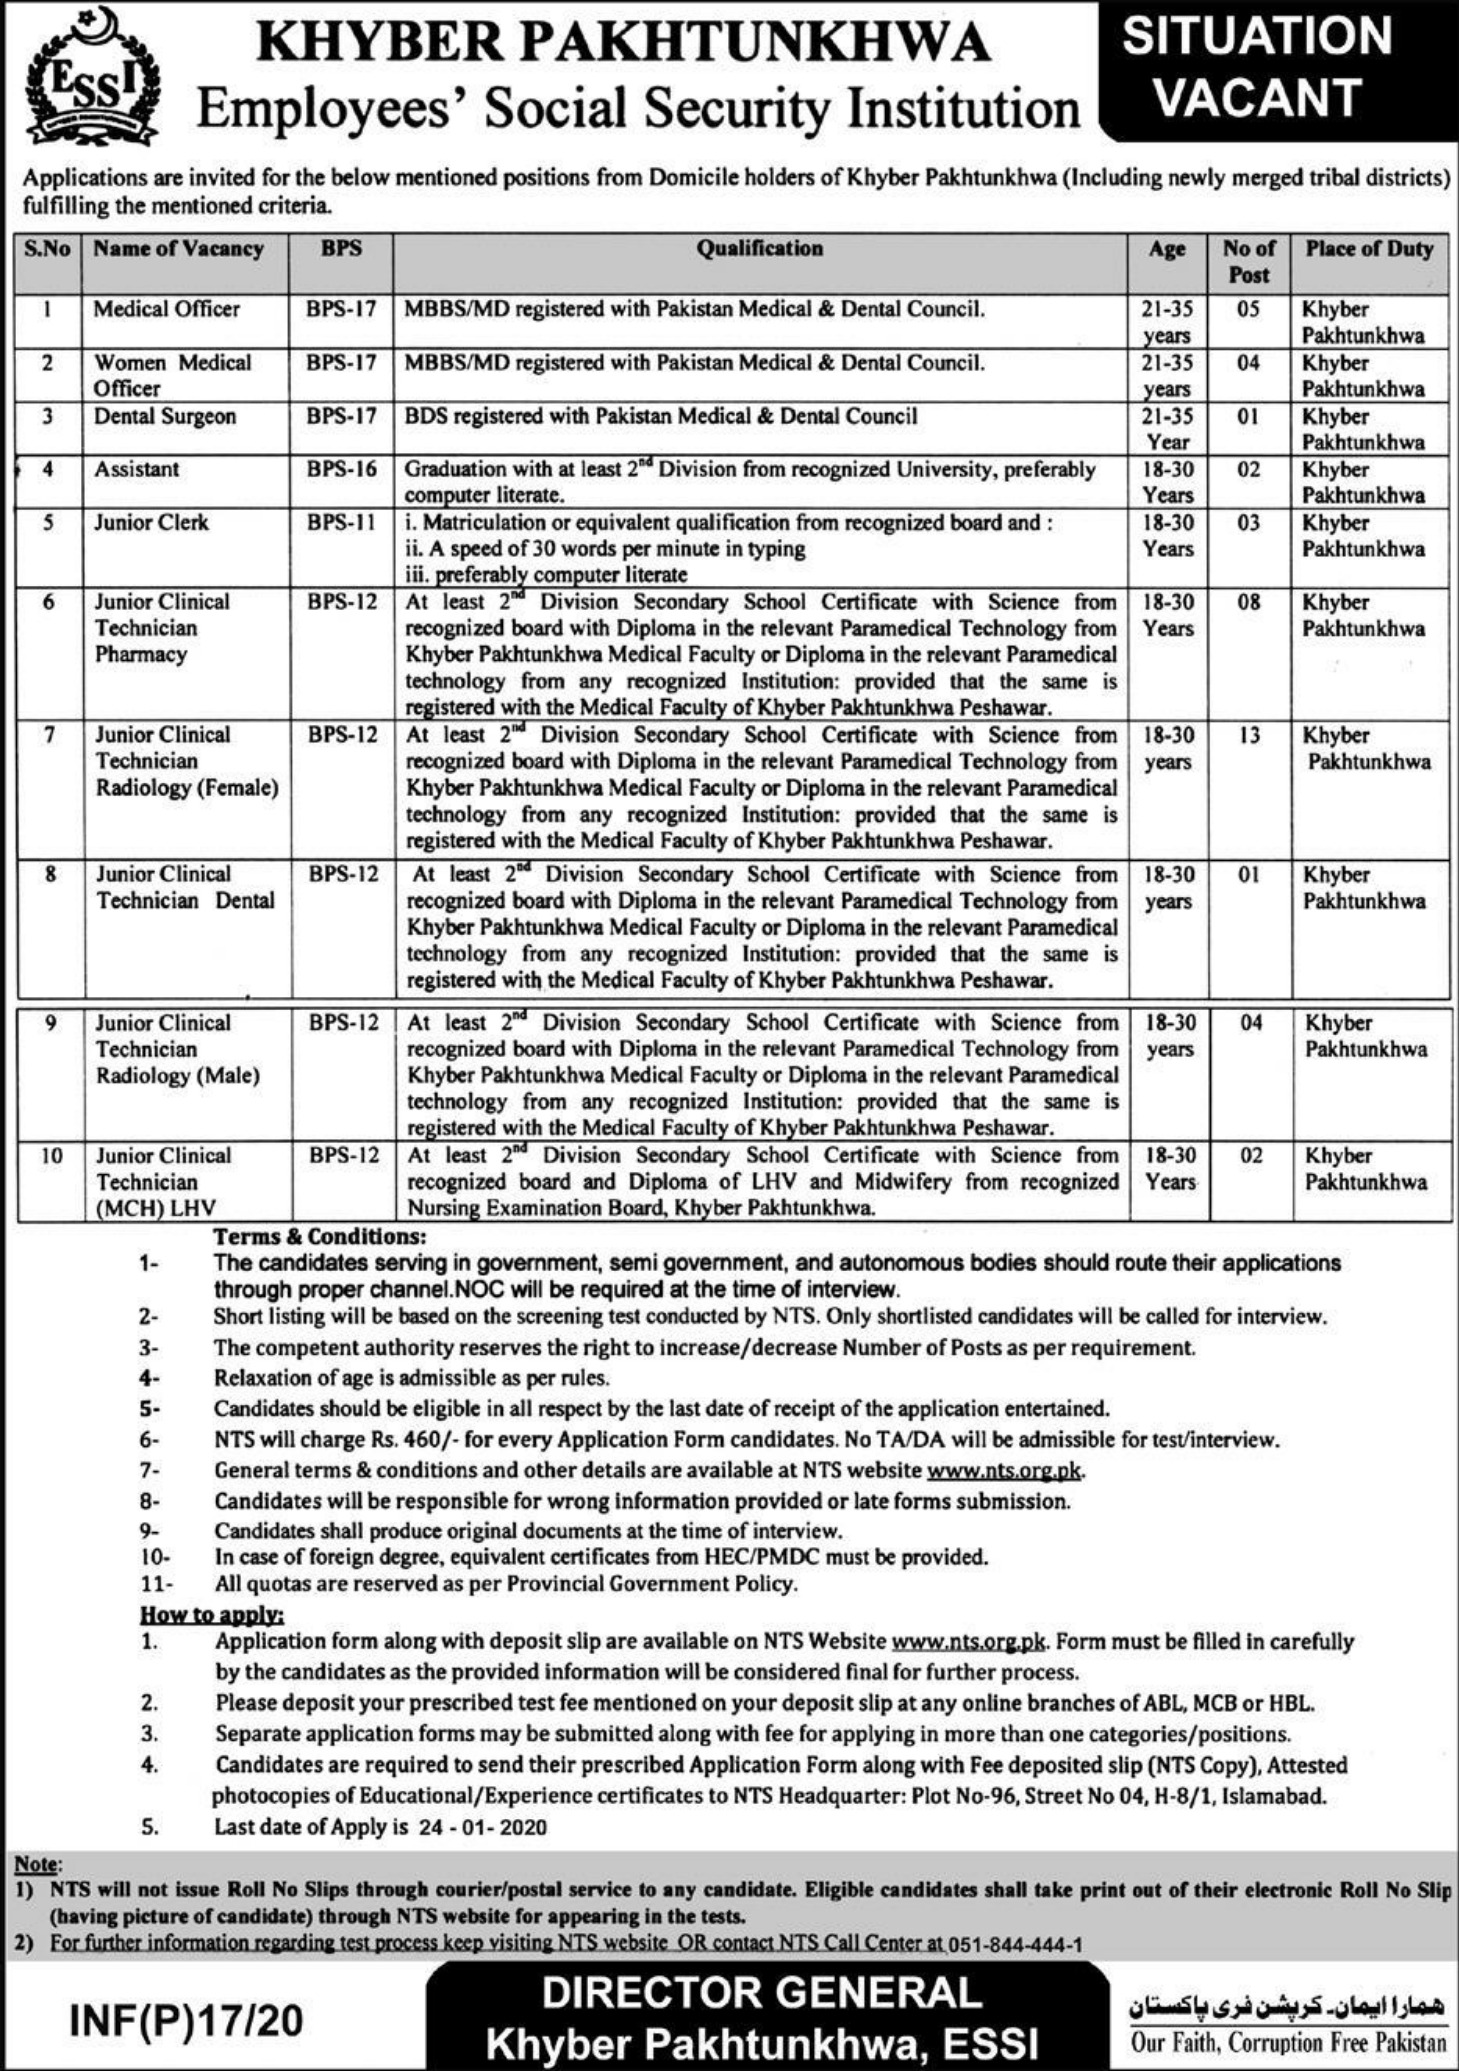 KPK ESSI Jobs 2020 Khyber Pakhtunkhwa Employees Social Security Institution